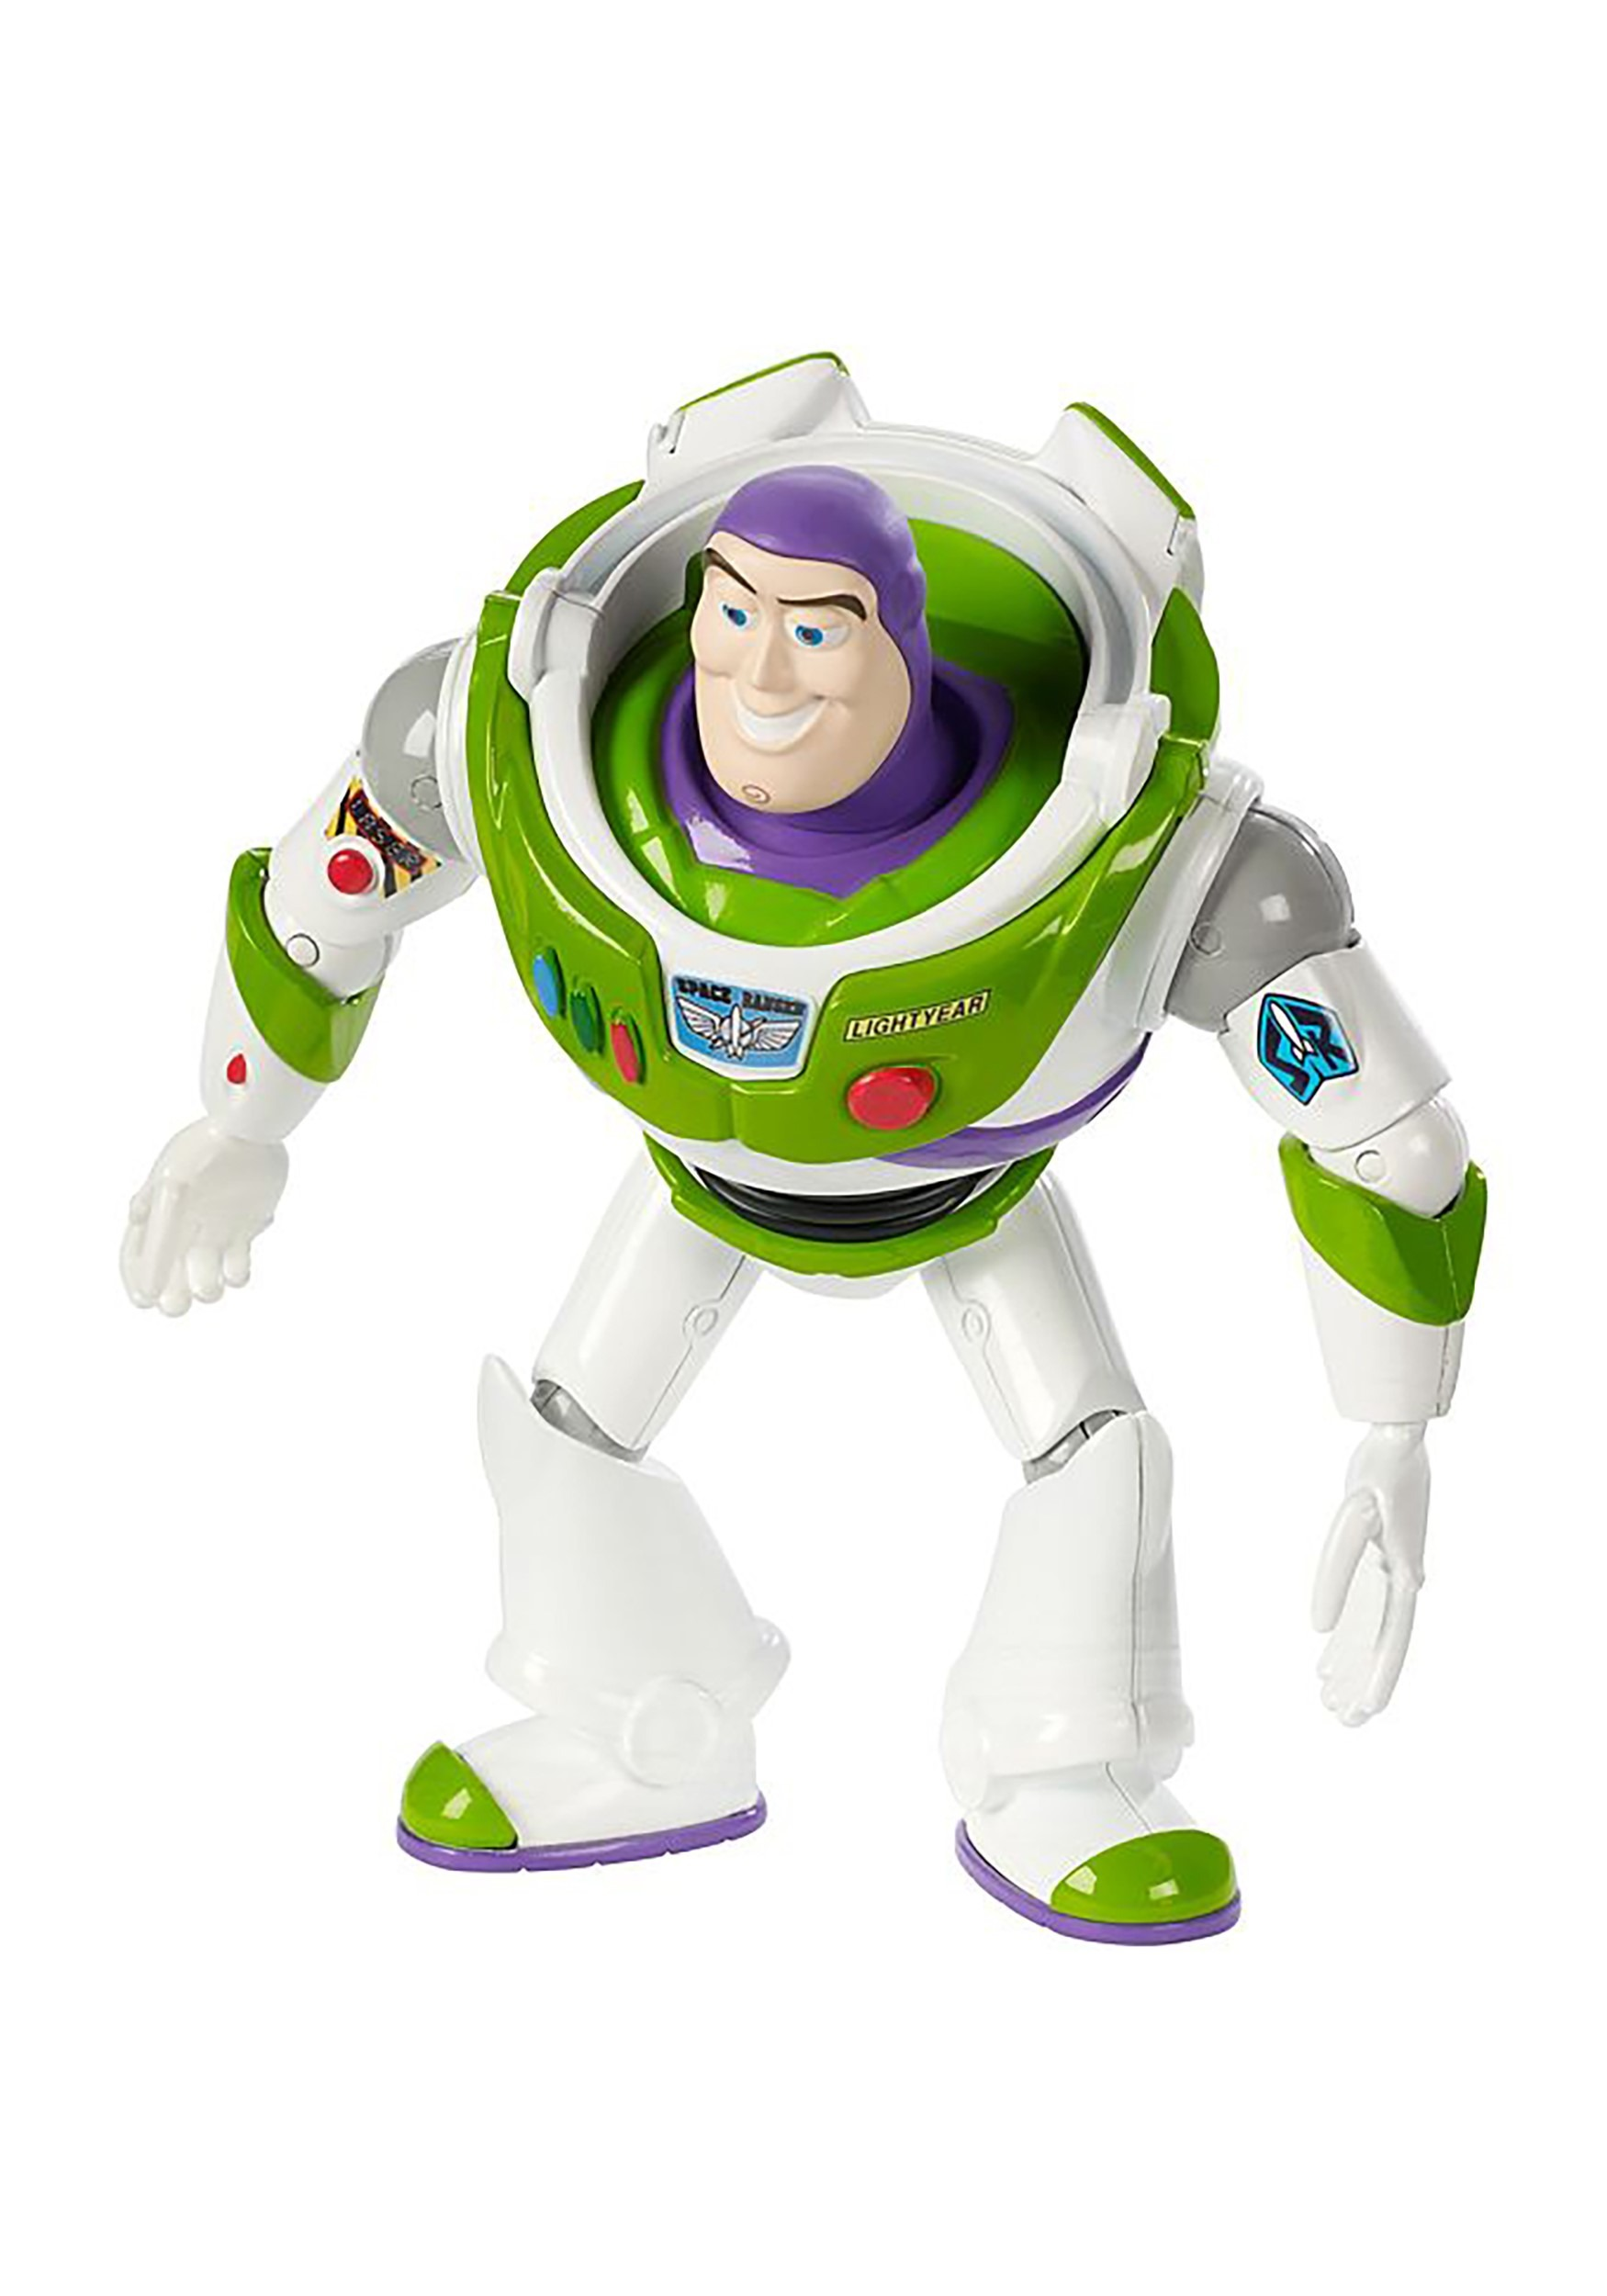 Disney Toy Story 4 Buzz Lightyear 7in Figure